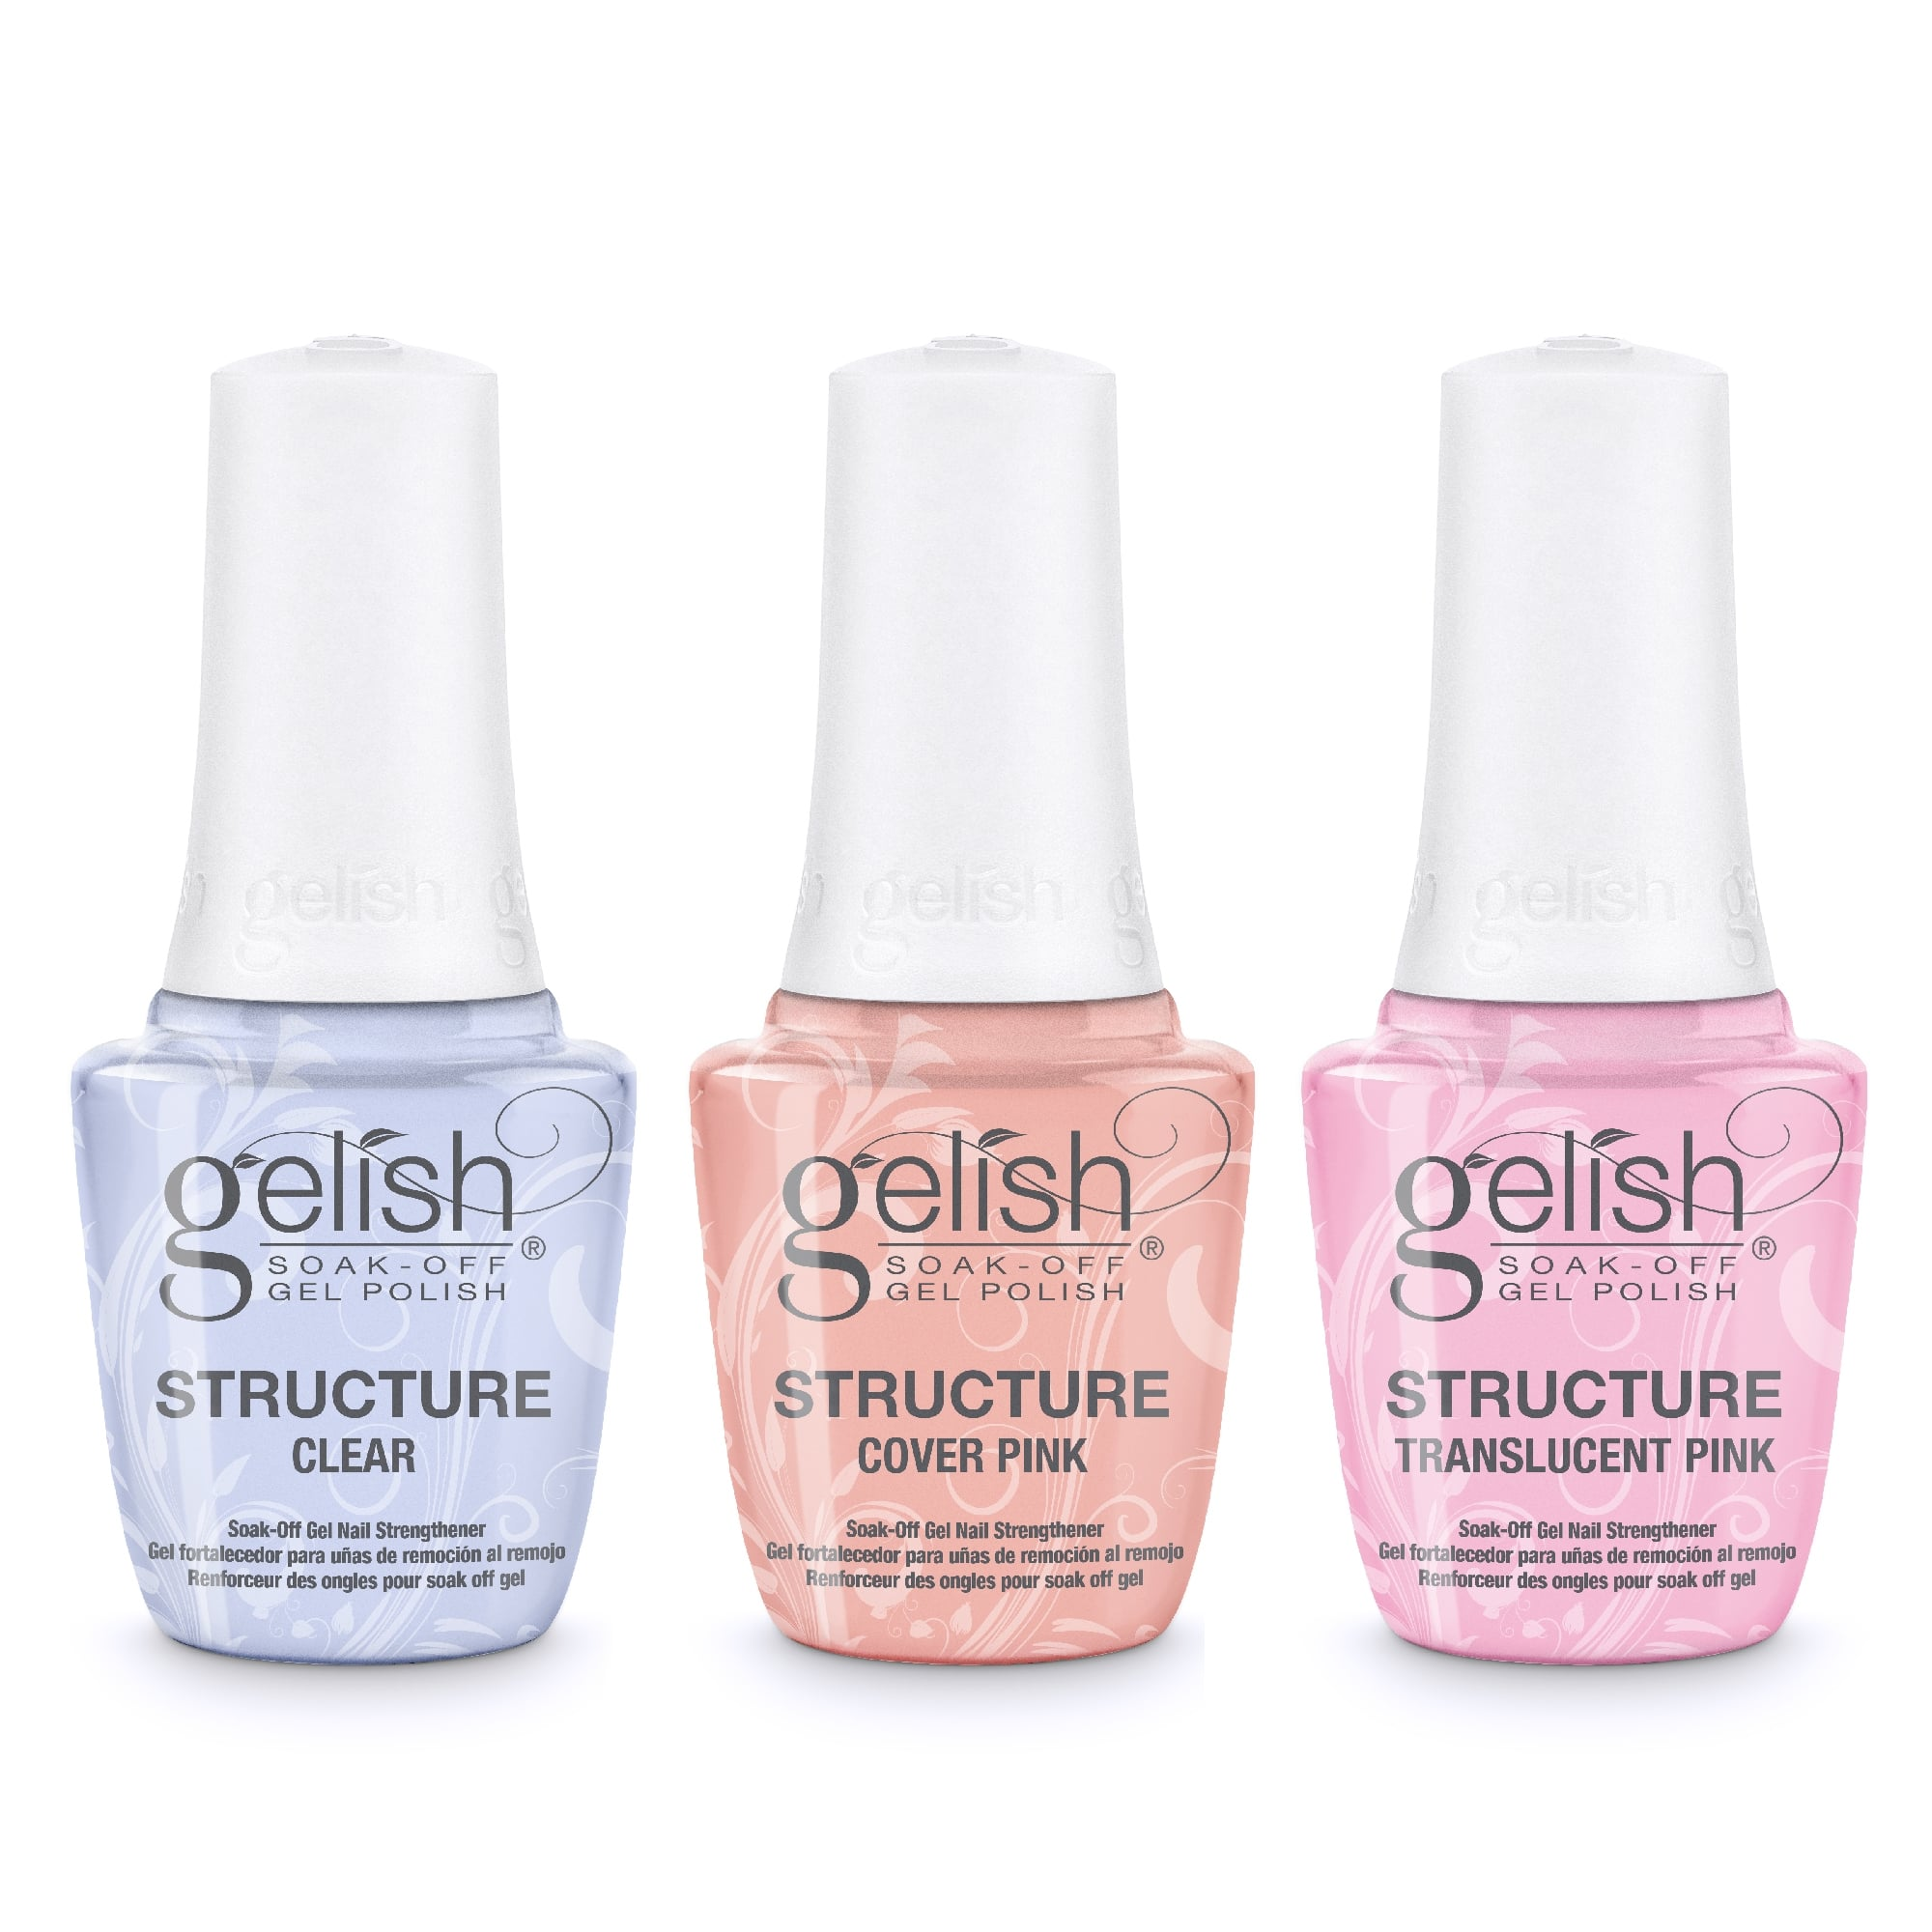 Gelish STRUCTURE Soak-Off Gel Nail Strengthener - Complete 3 Piece Set